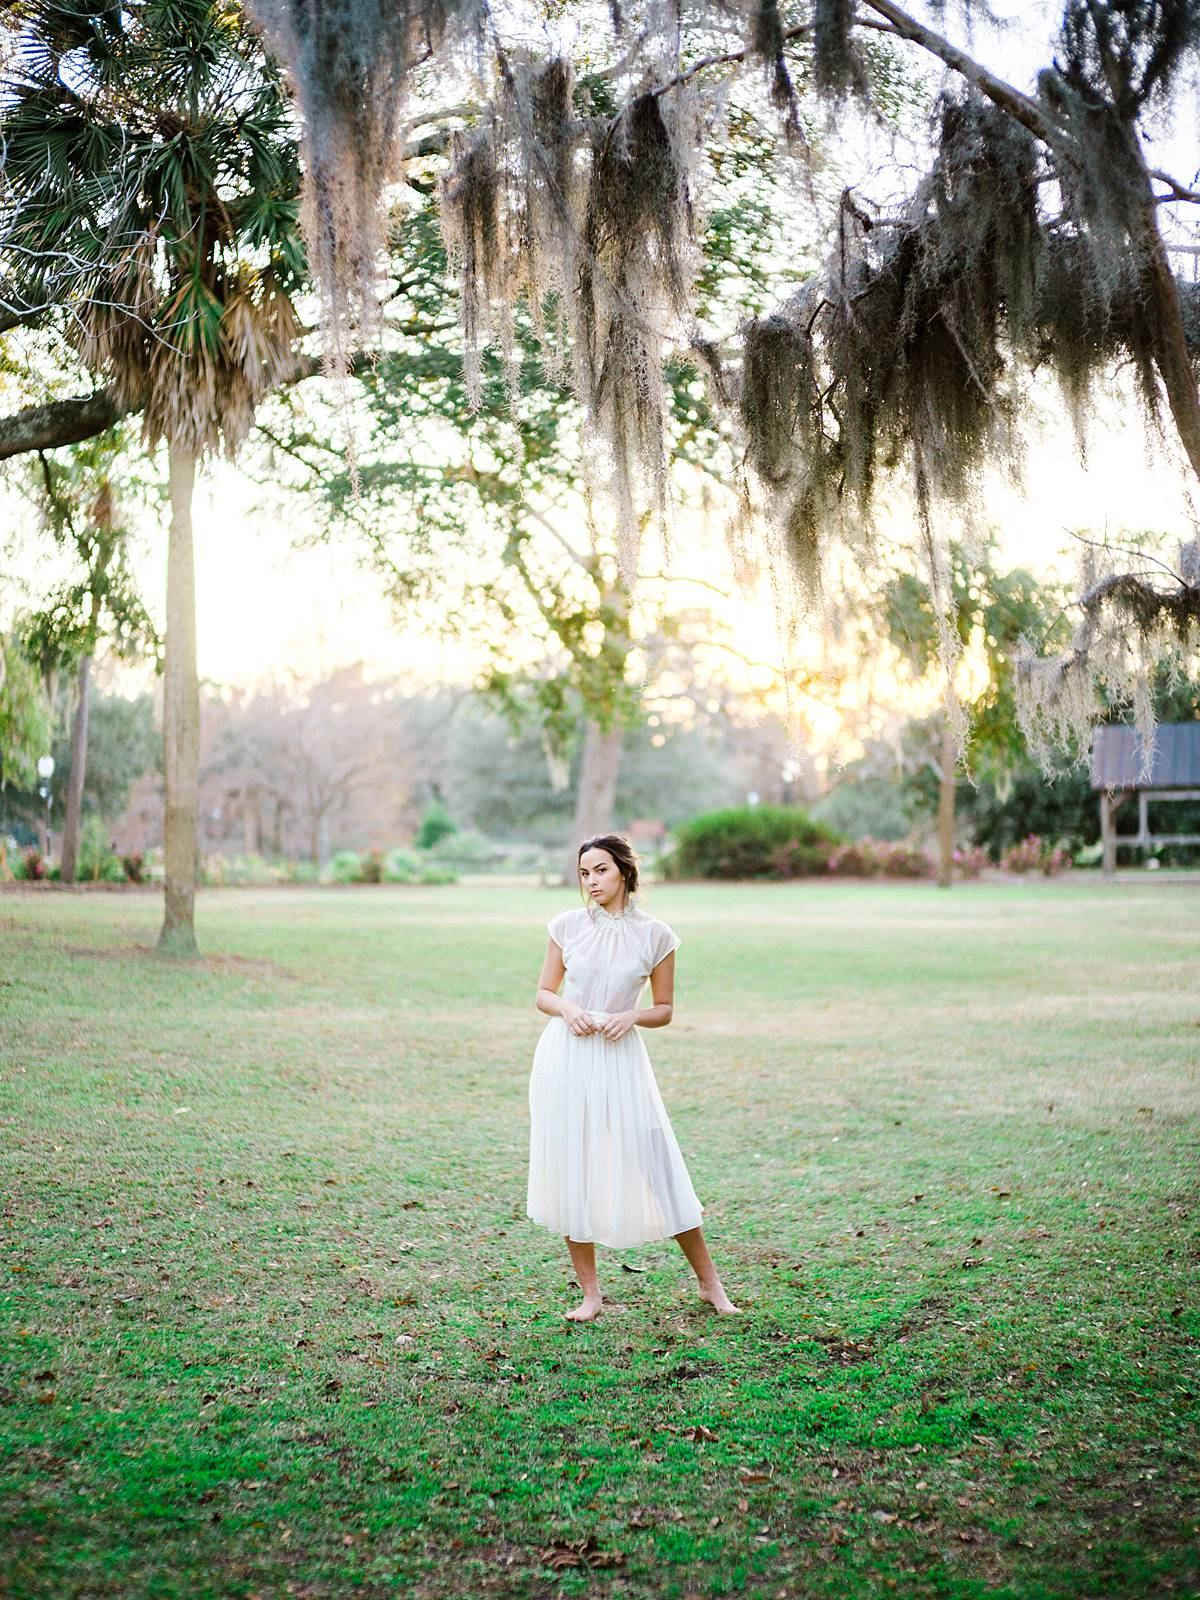 1911 paulina hampton park charleston fall portraits sony leica 00019_web